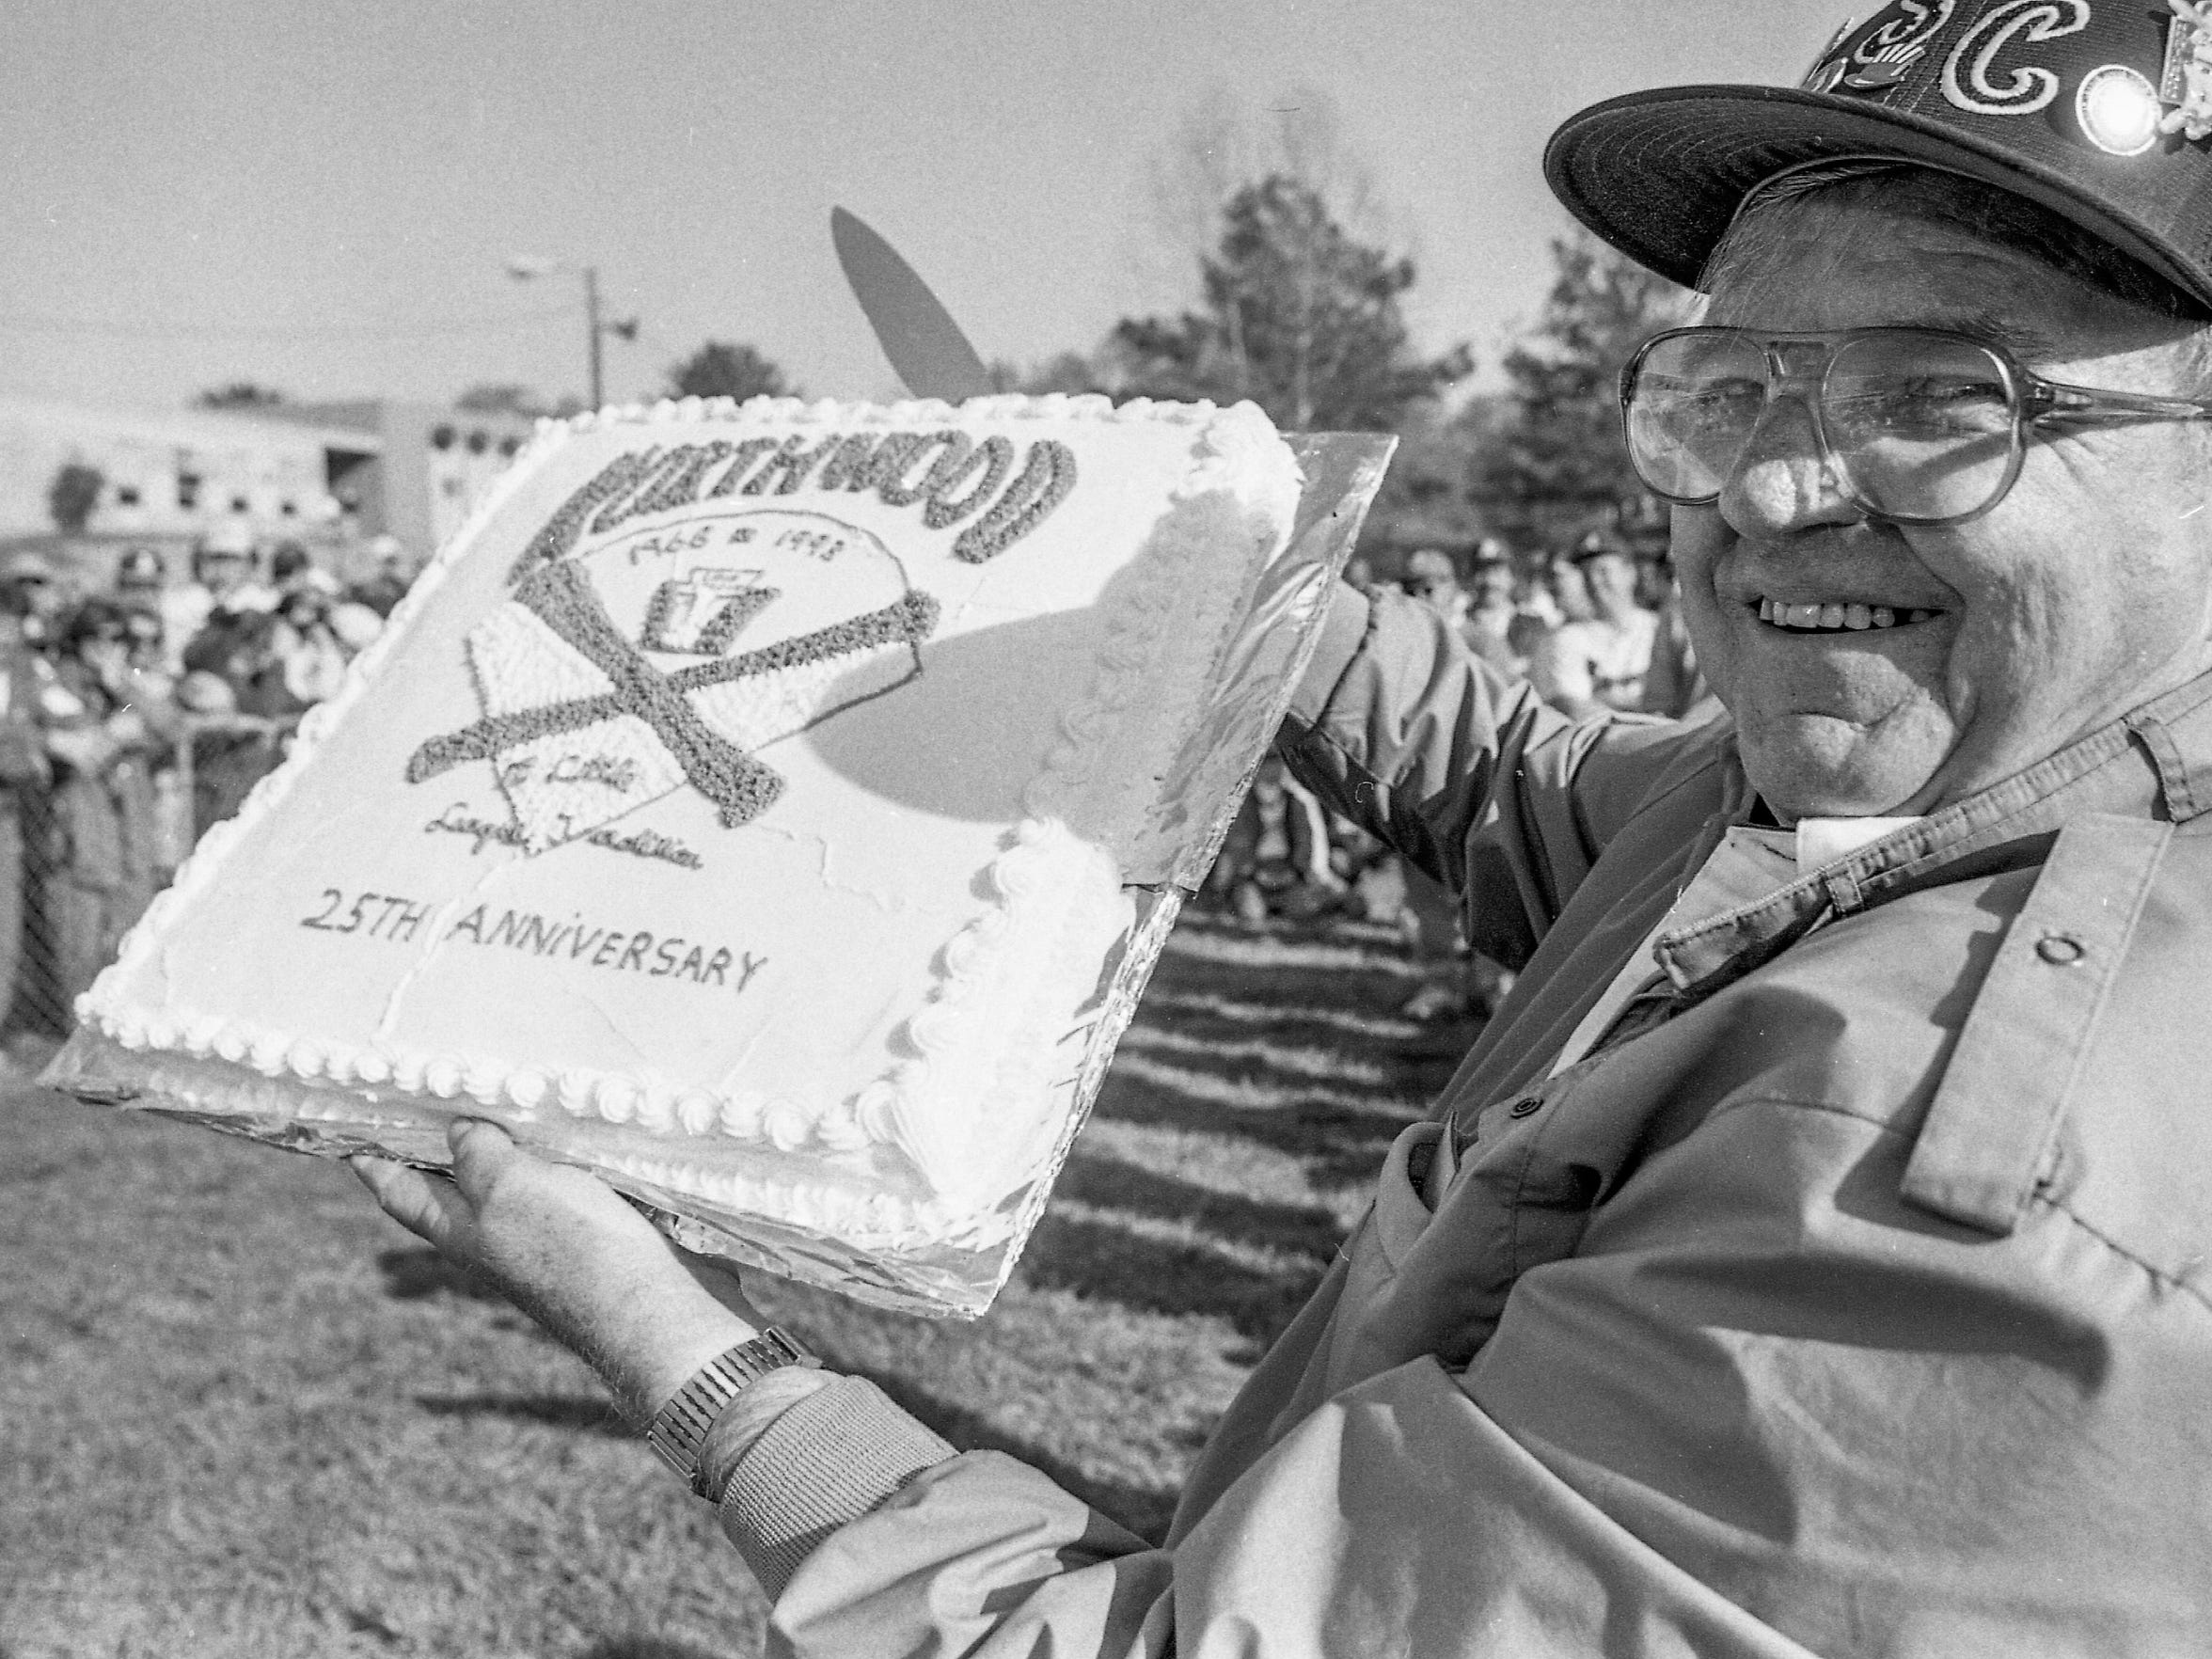 Northwood Little League founder Bob Tillison displays a cake presented during the 1993 opening day ceremonies.